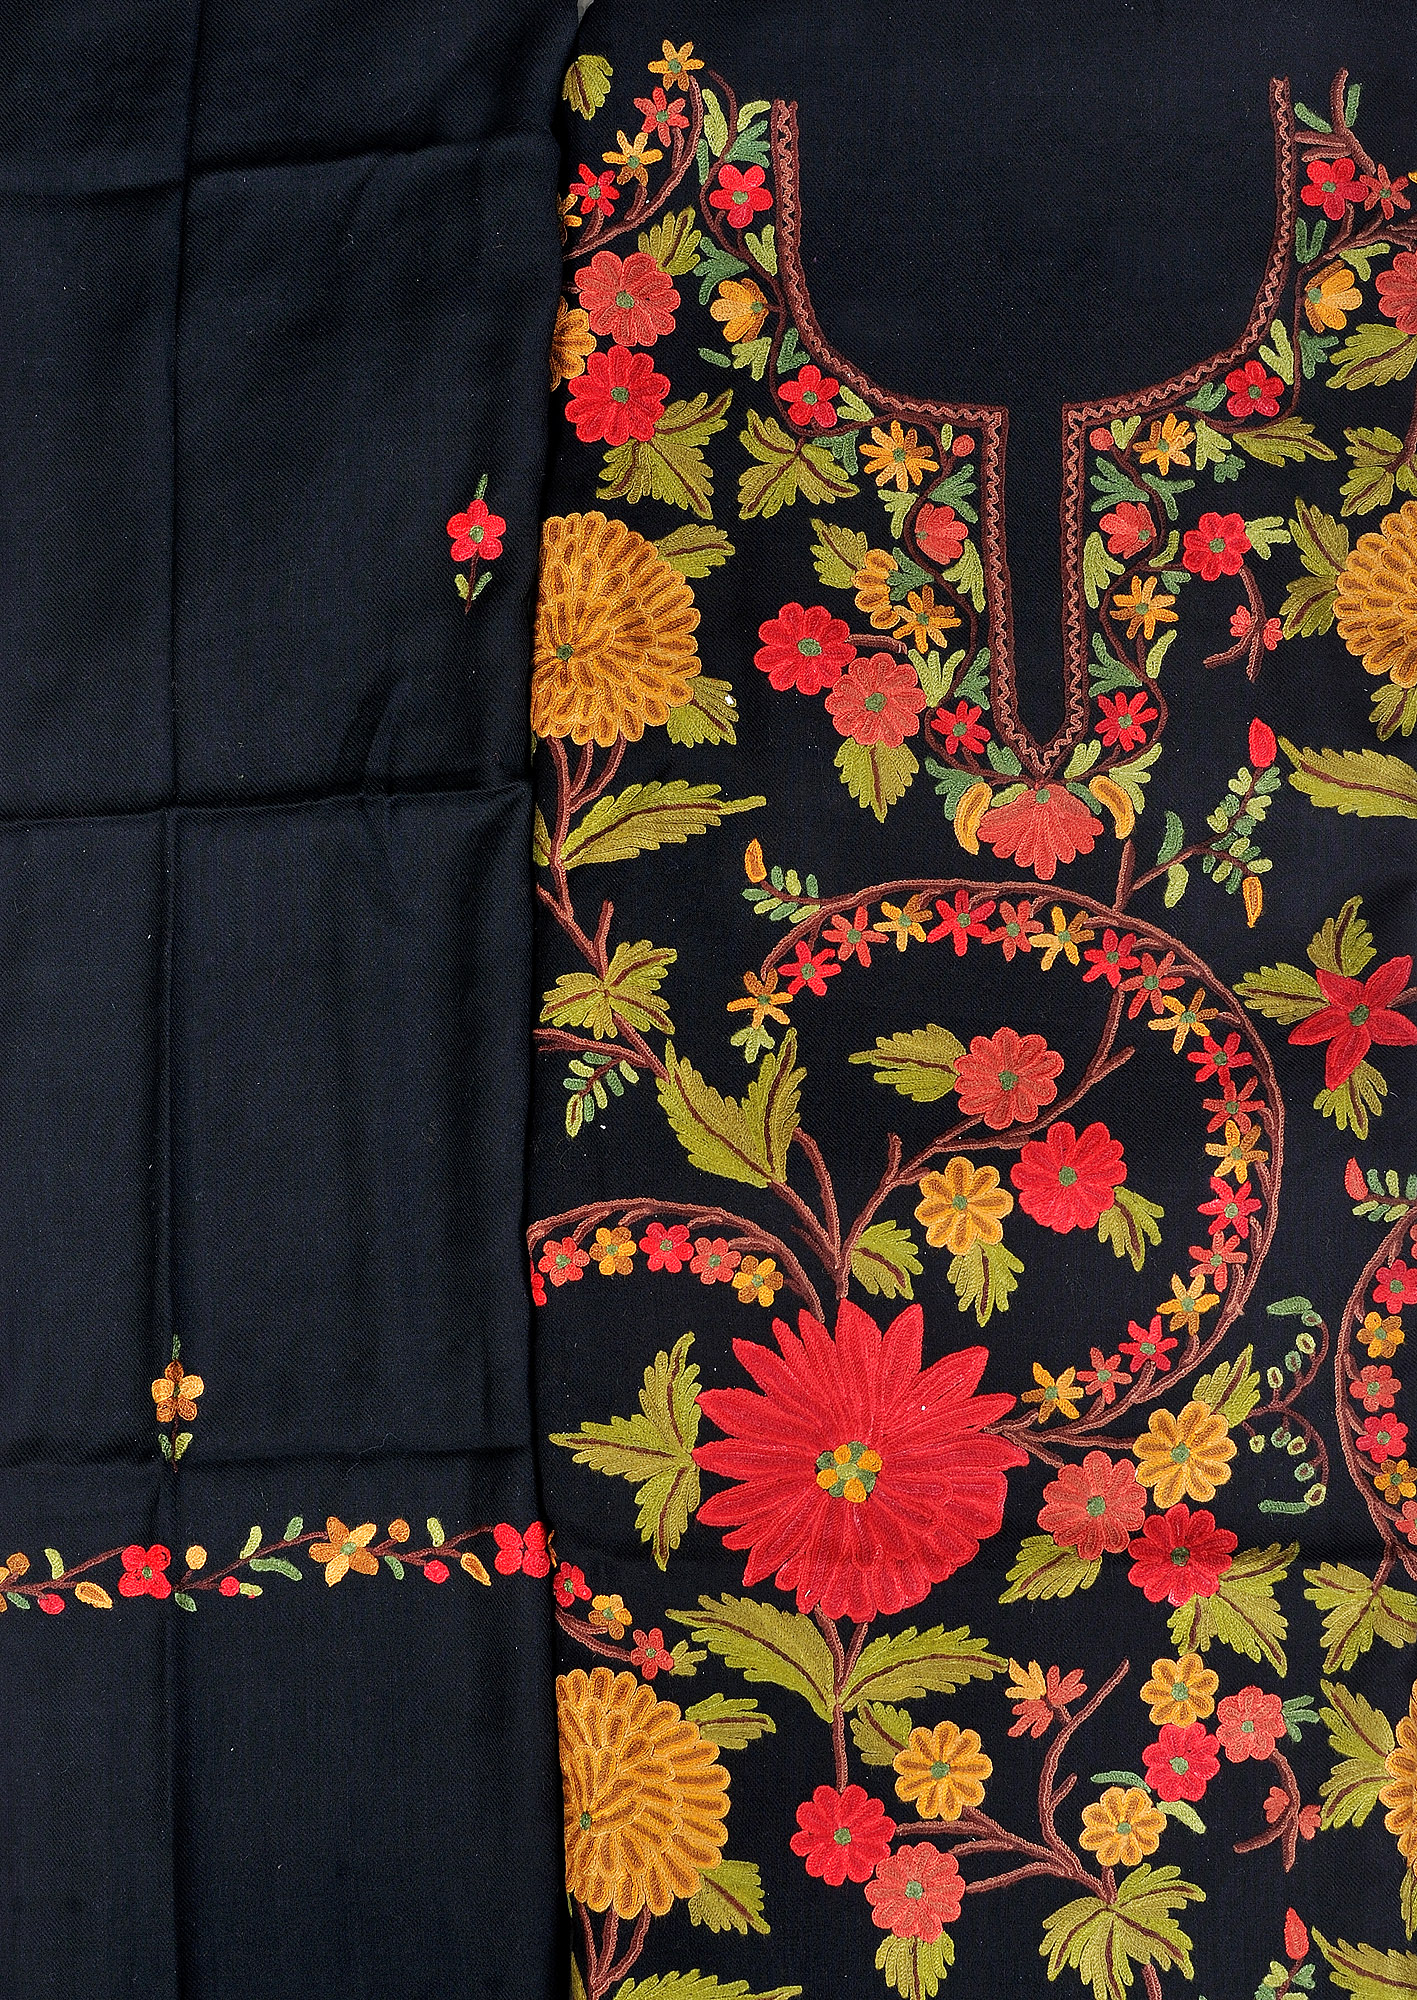 Jet black salwar kameez fabric from kashmir with ari hand